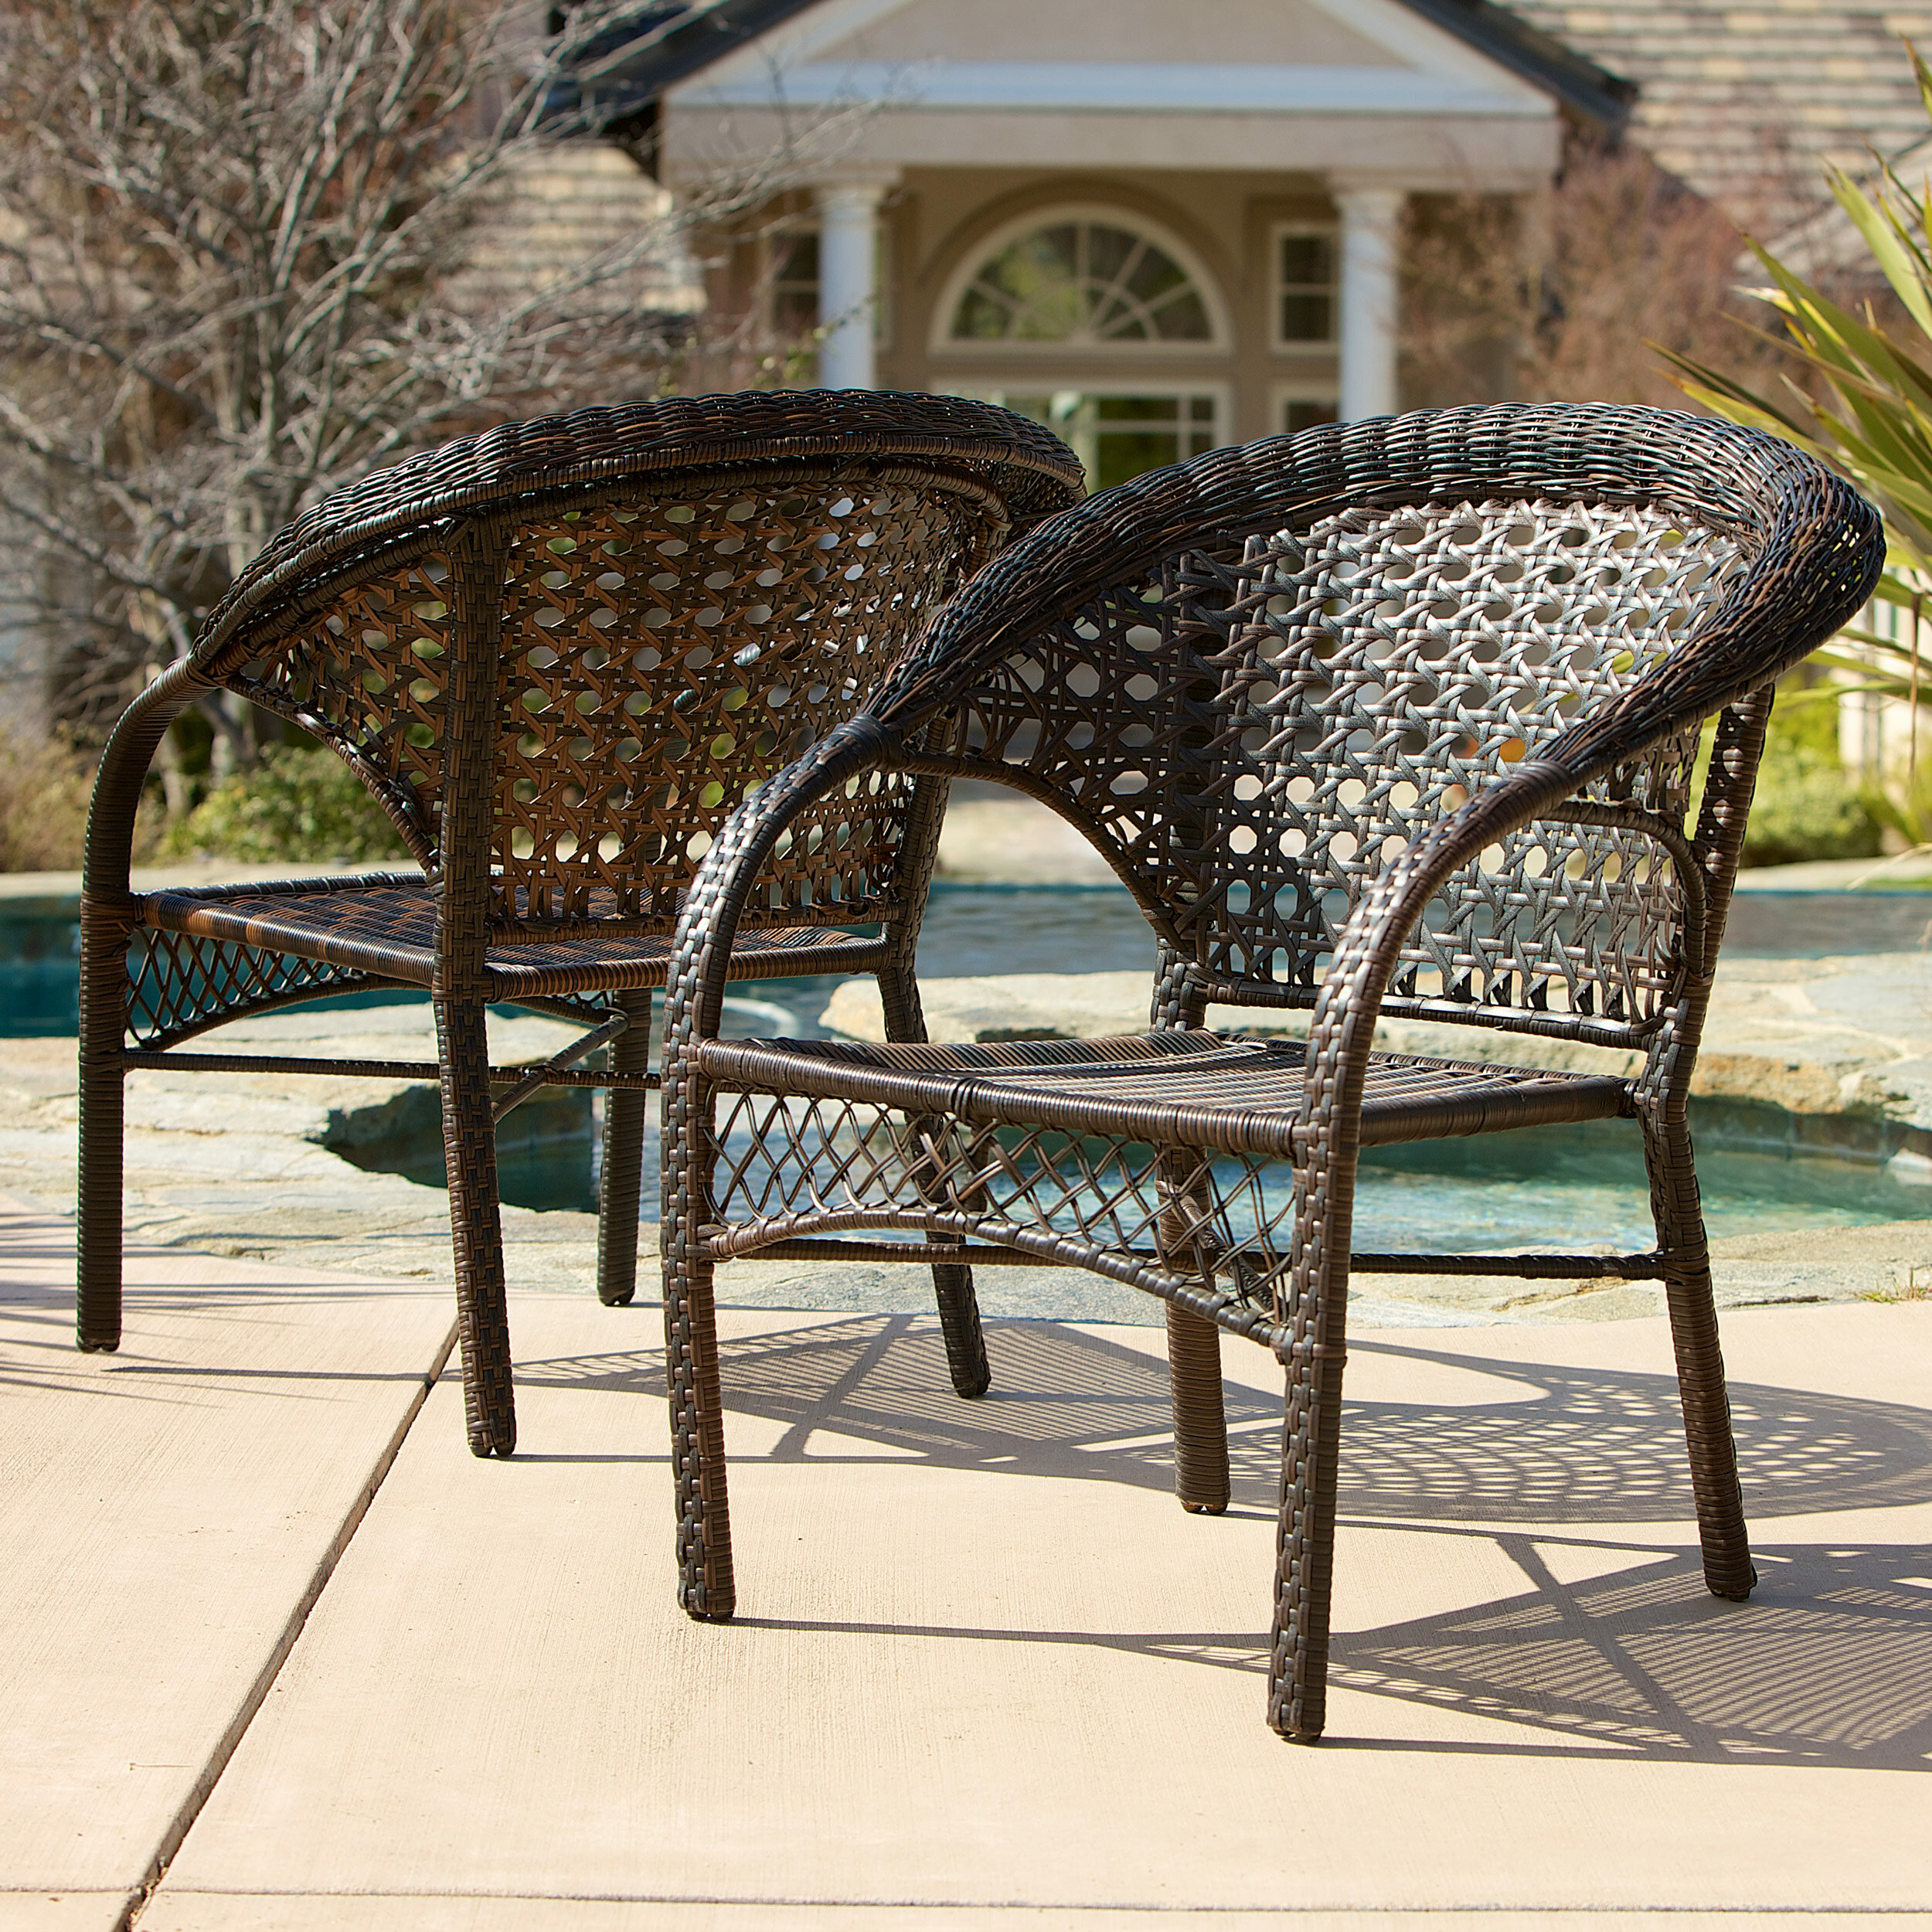 knight set wicker overstock garden of christopher home brooke today free outdoor product chairs chair shipping